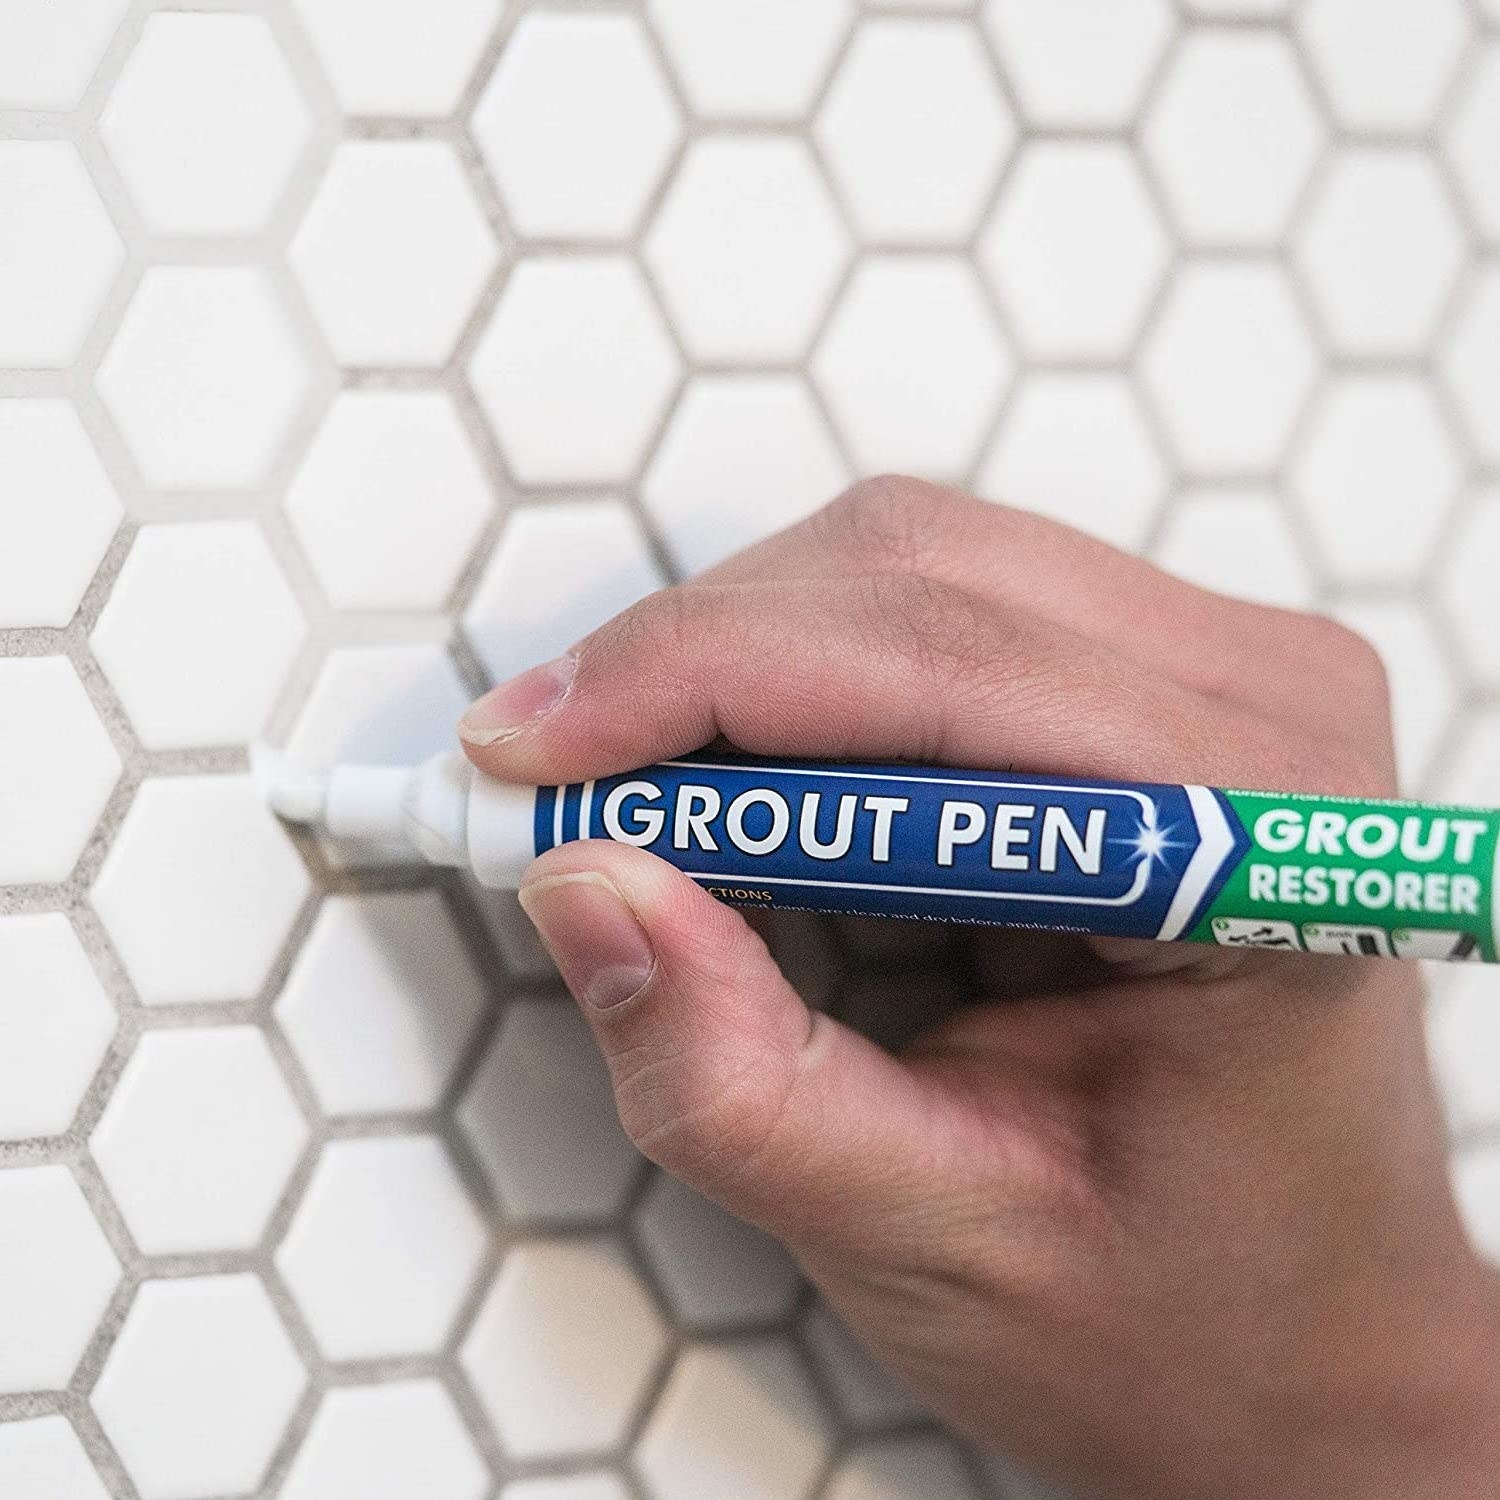 the pen cleaning grout between white tiles